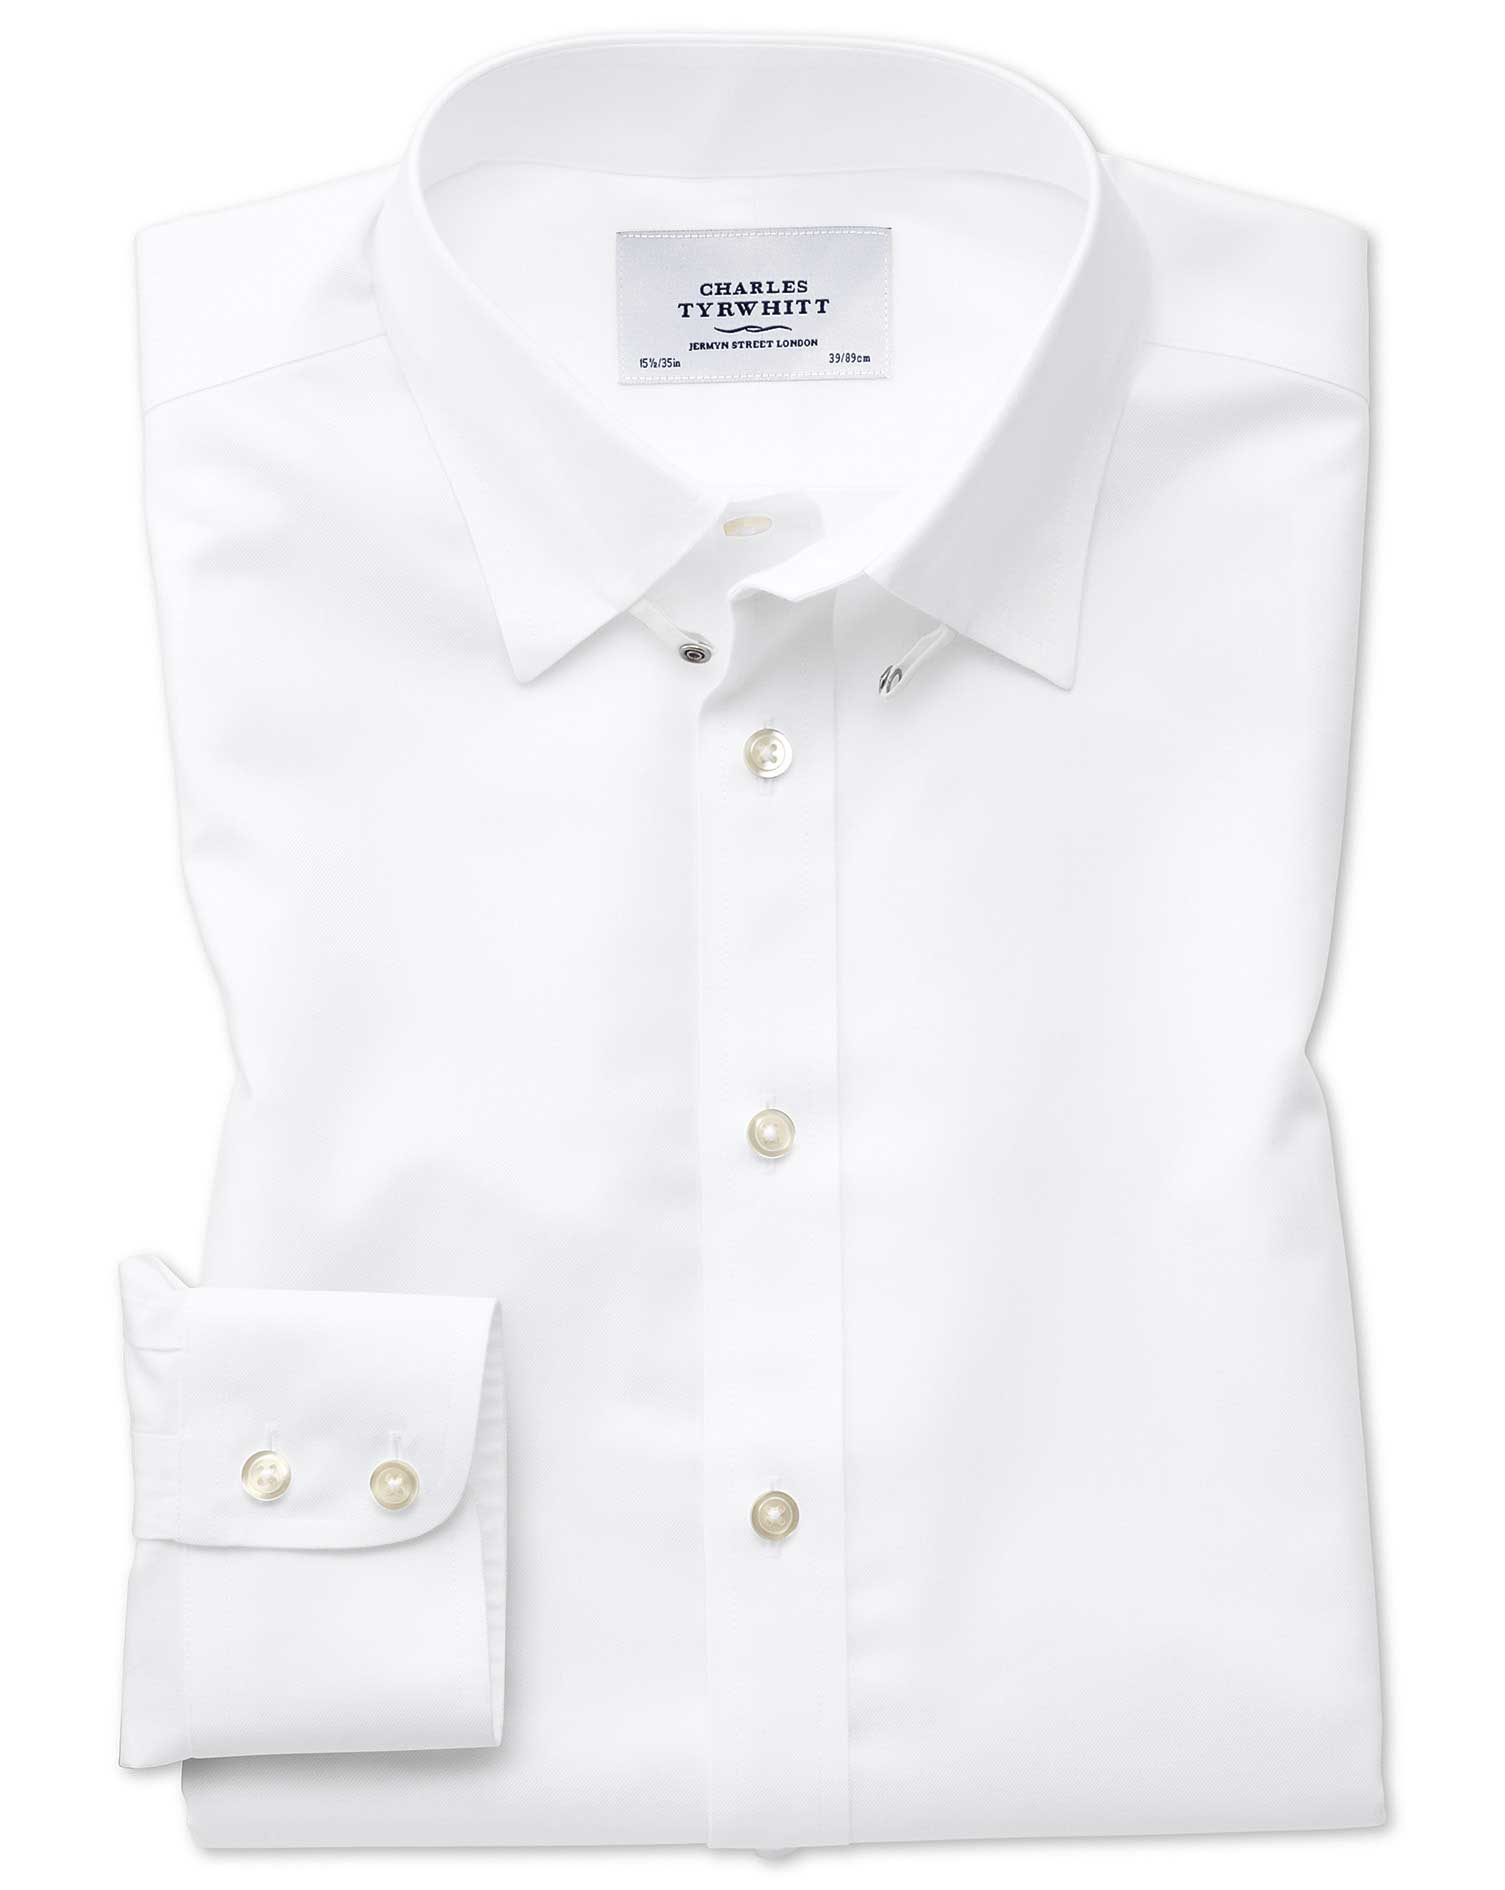 Slim Fit Tab Collar Non-Iron Twill White Cotton Formal Shirt Single Cuff Size 15/34 by Charles Tyrwh